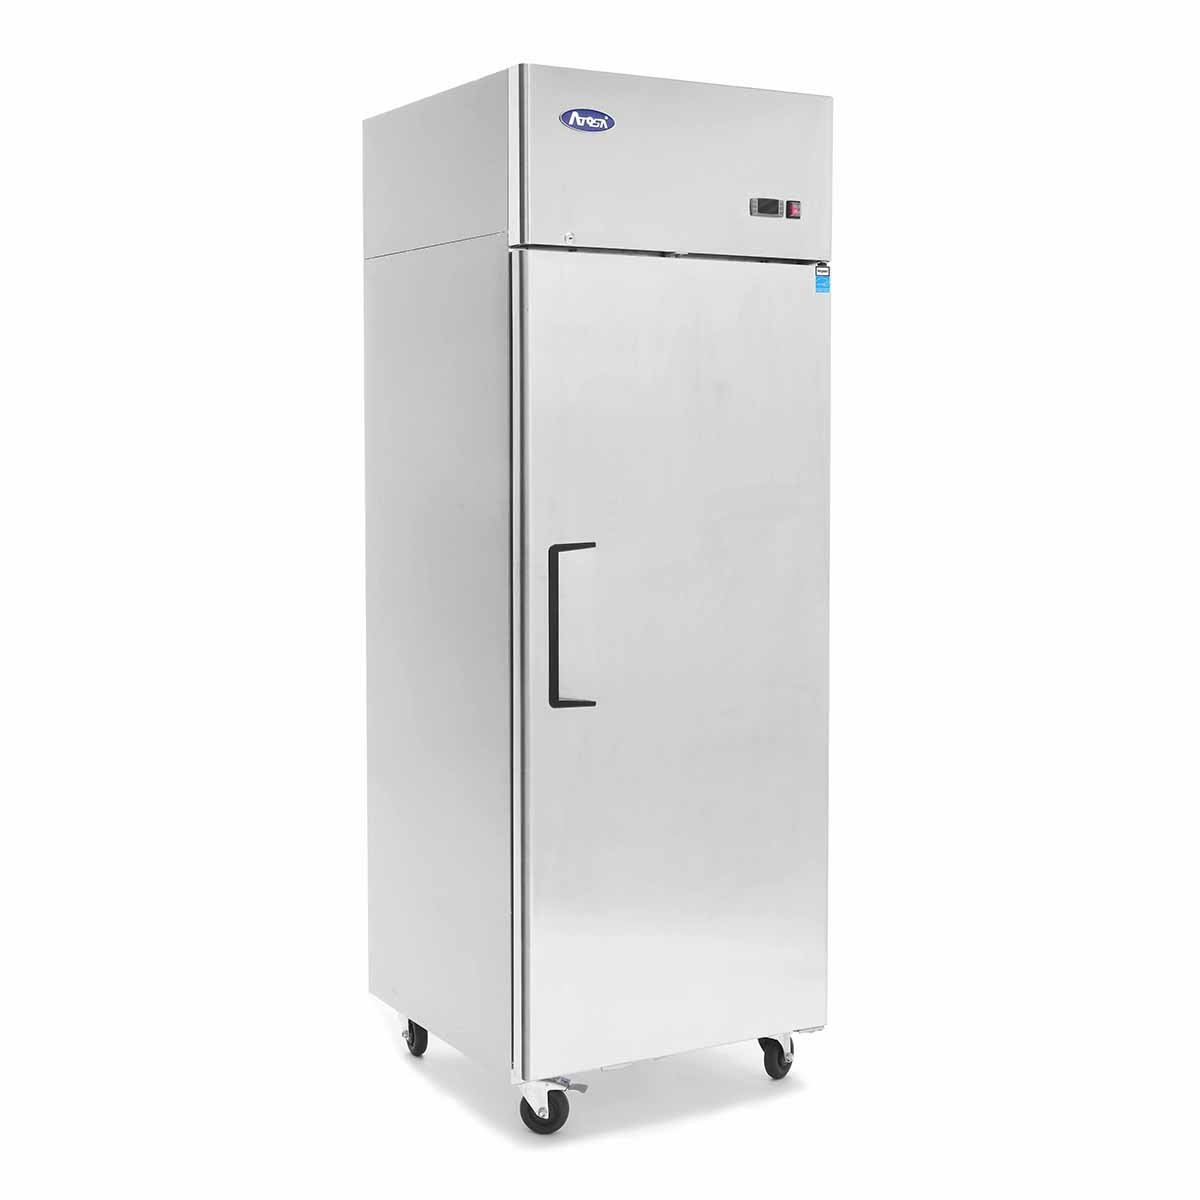 Single Door Commercial Refrigerators, ATOSA Top Mount Stainless Steel Reach in Upright Refrigerator With 1 Solid Door for Restaurant - 21.4 cu.ft, 33℉-38℉, Air Cooled, Energy Star by Atosa